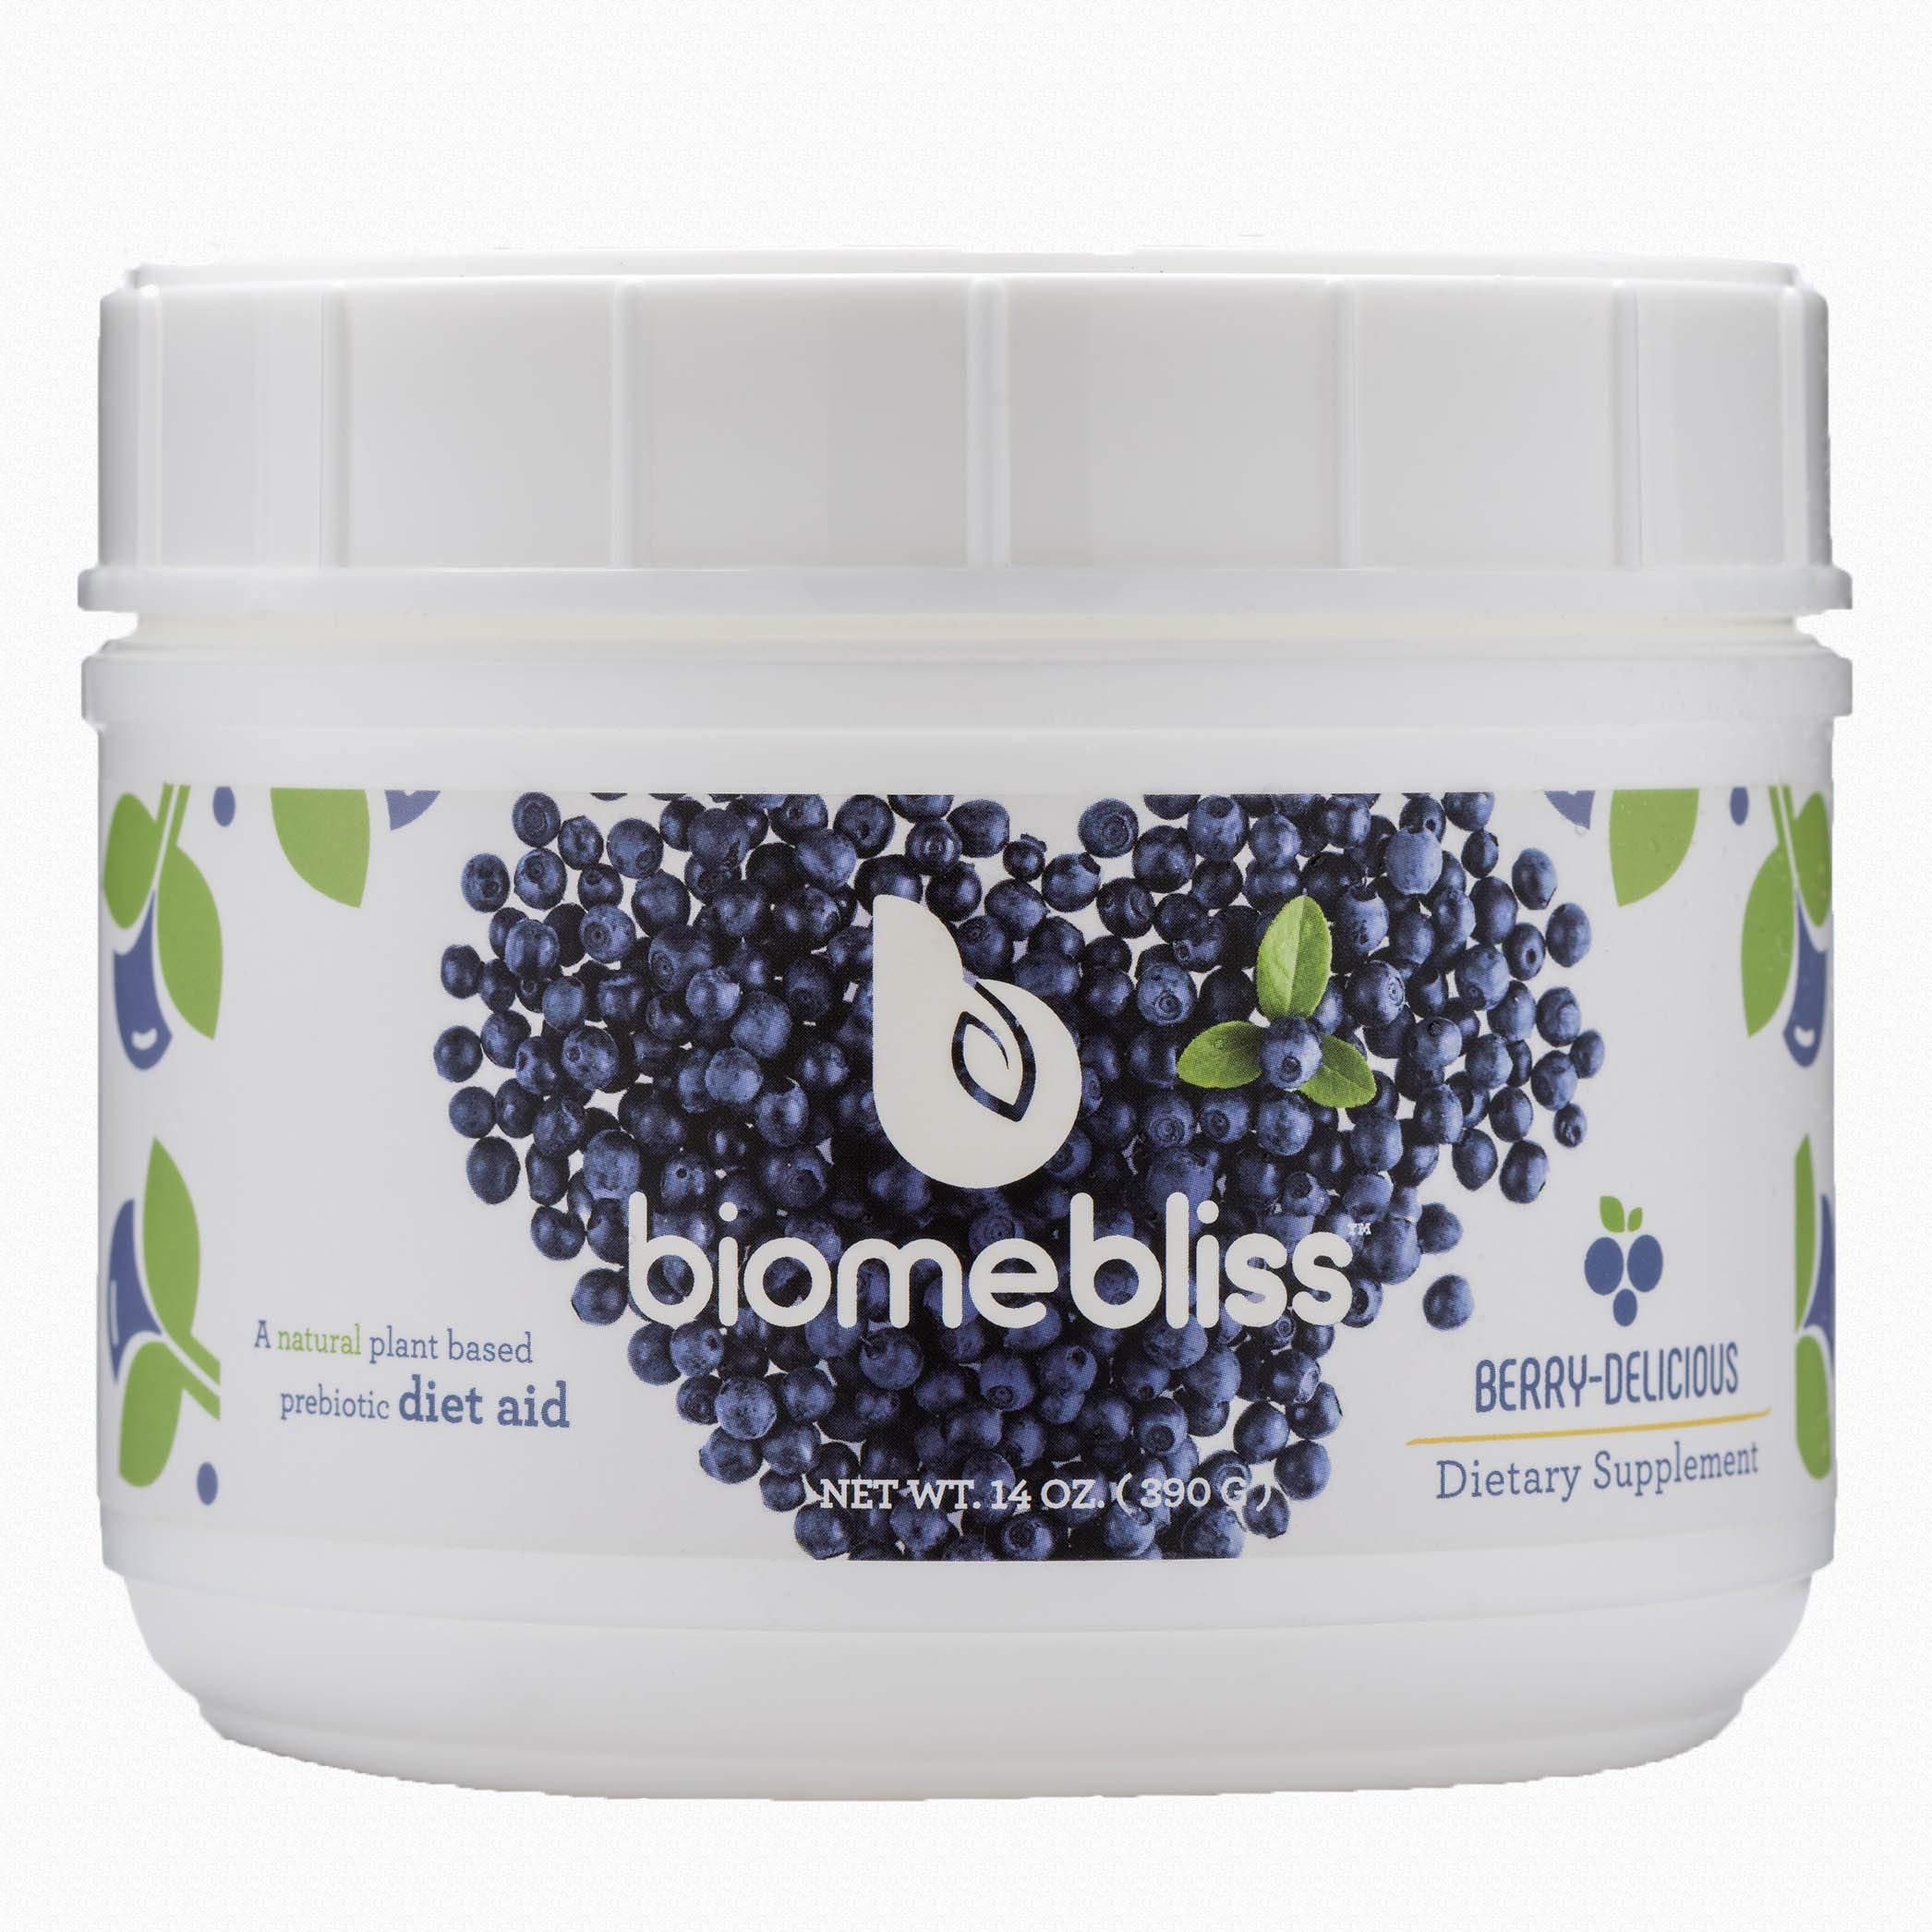 BiomeBliss Prebiotic Fiber Blend - A Berry-Delicious Drink Mix for Hunger Control, Gut Health, Regularity, Blood Sugar Regulation. Scientifically Tested Prebiotic Solution - 14oz (390G) by BiomeBliss